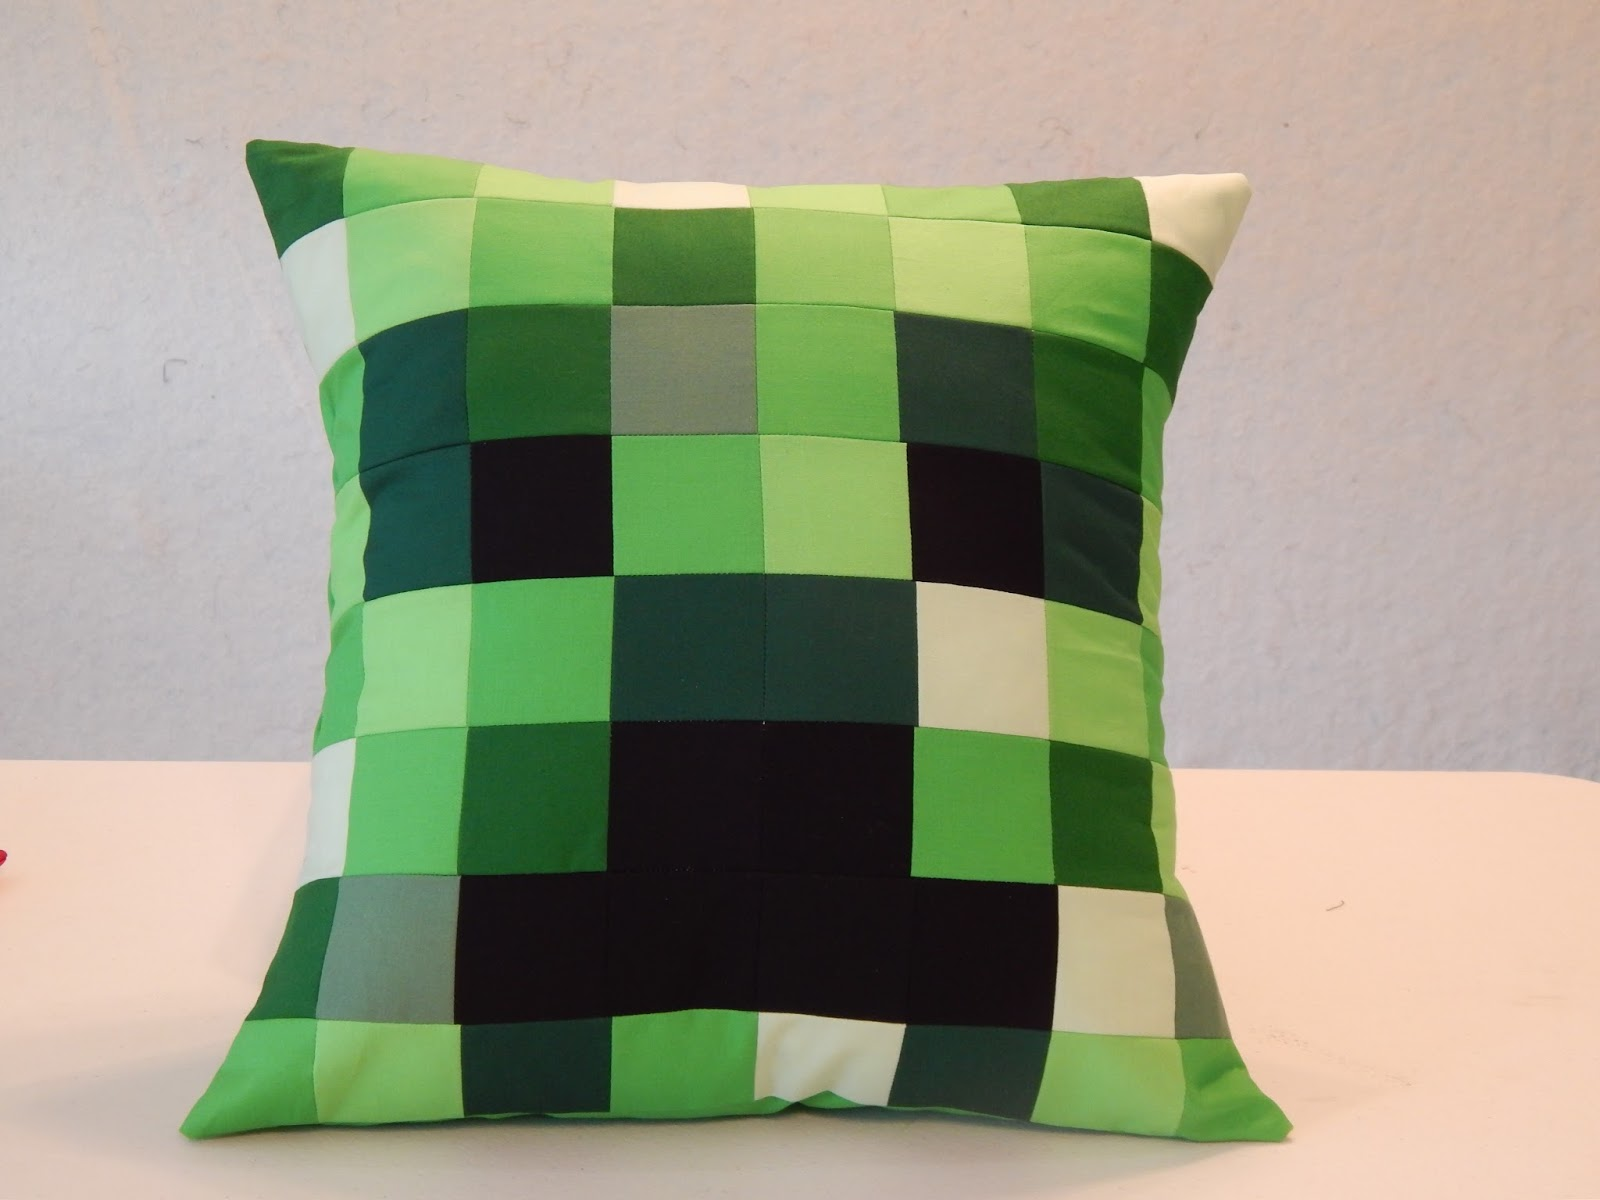 The Fleming's Nine: Minecraft Quilt, New Blocks, and a Pillow